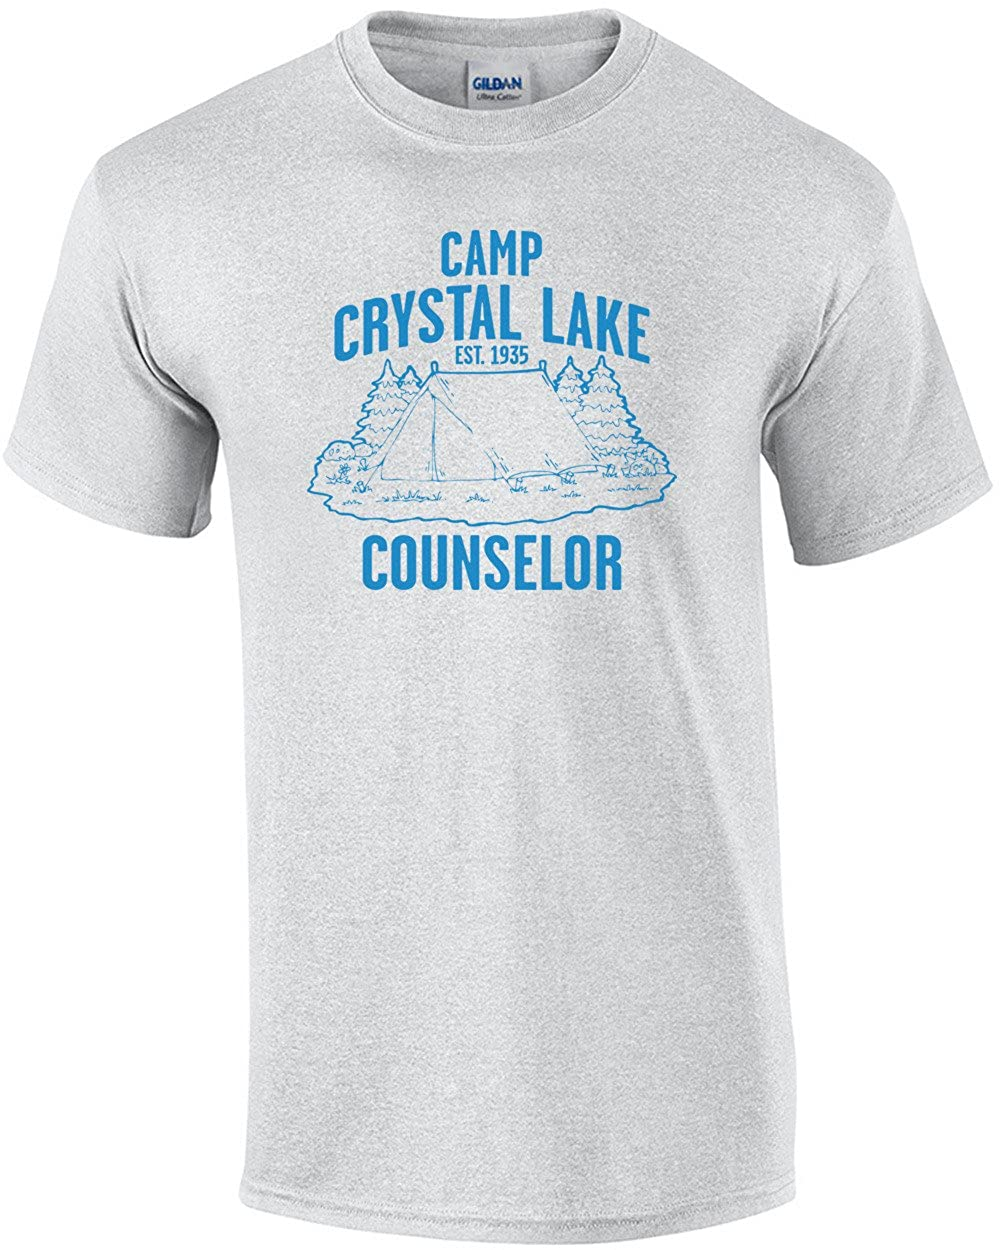 001da5e6 Amazon.com: Better Than Pants Camp Crystal Lake Counselor T-Shirt: Clothing